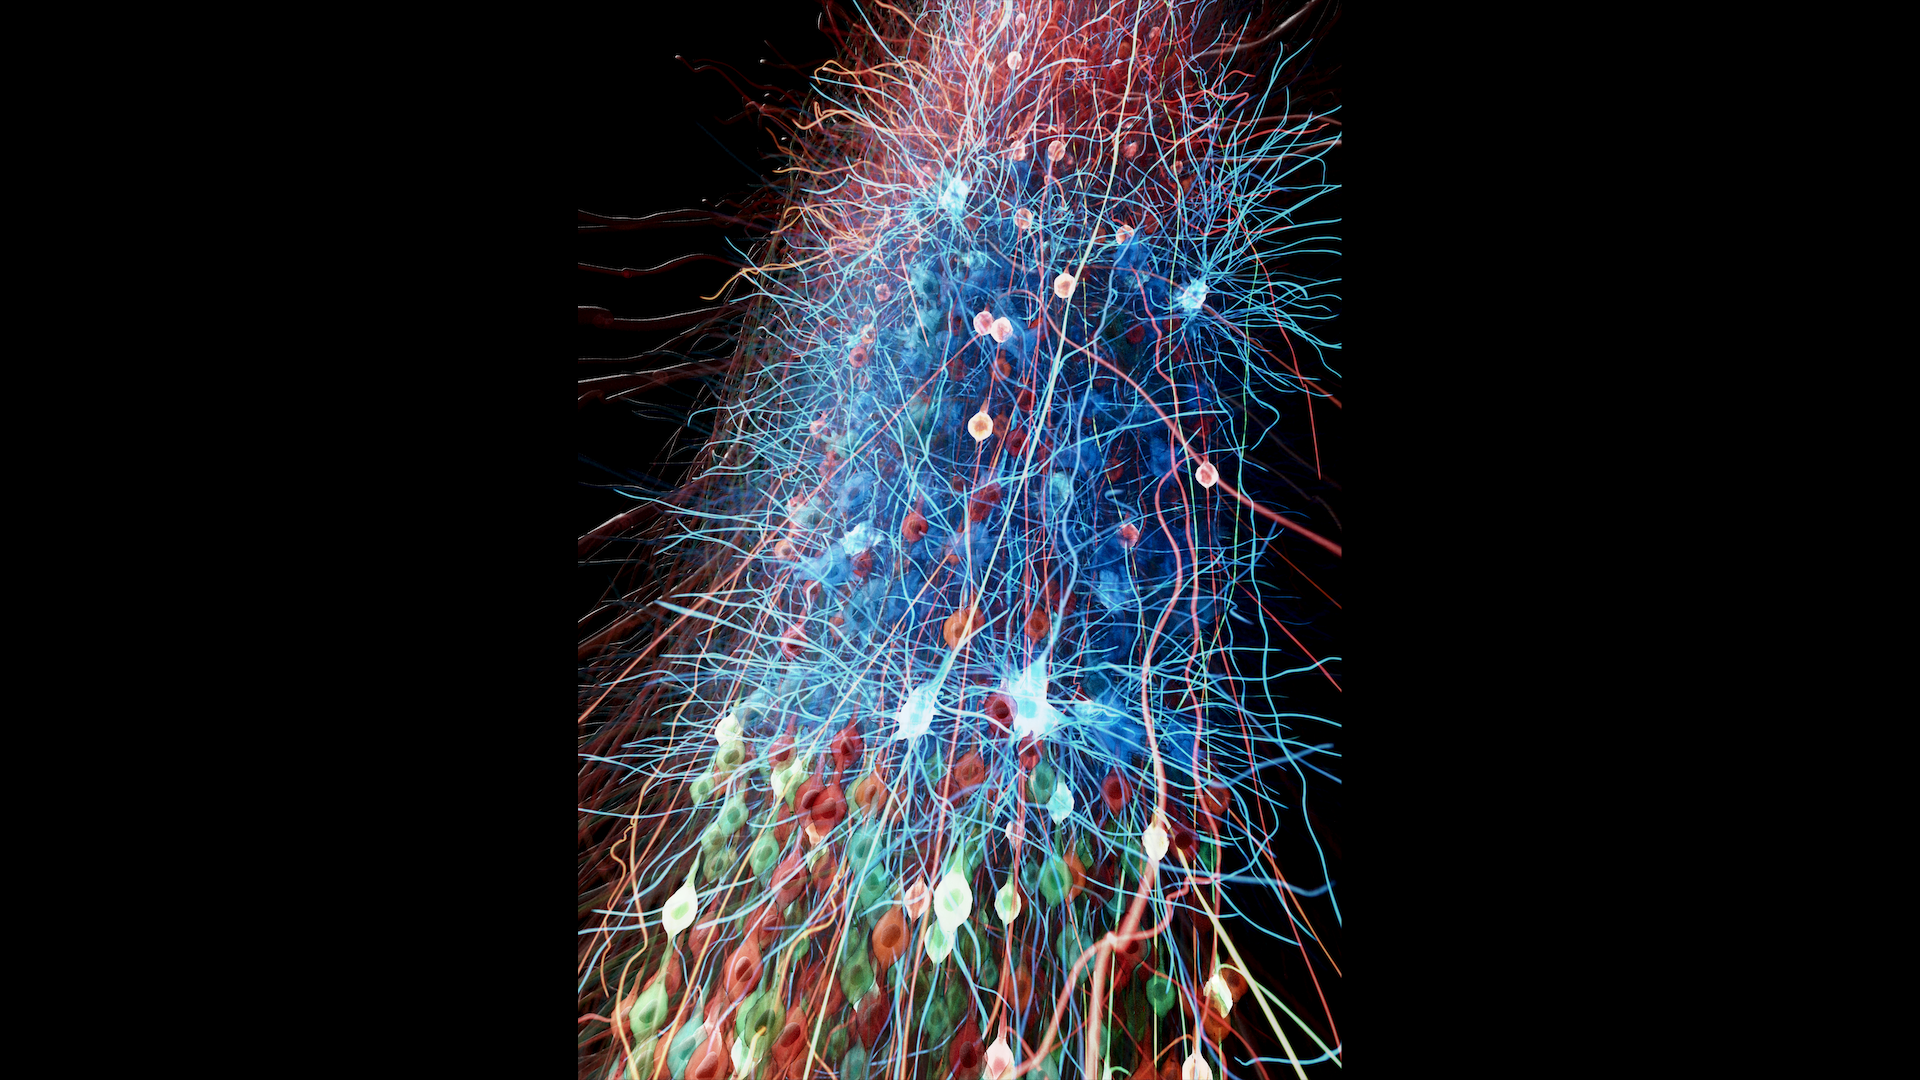 Model of motor cortex circuits developed with NetPyNE tool (netpyne.org). Visualization: nicolasantille.com